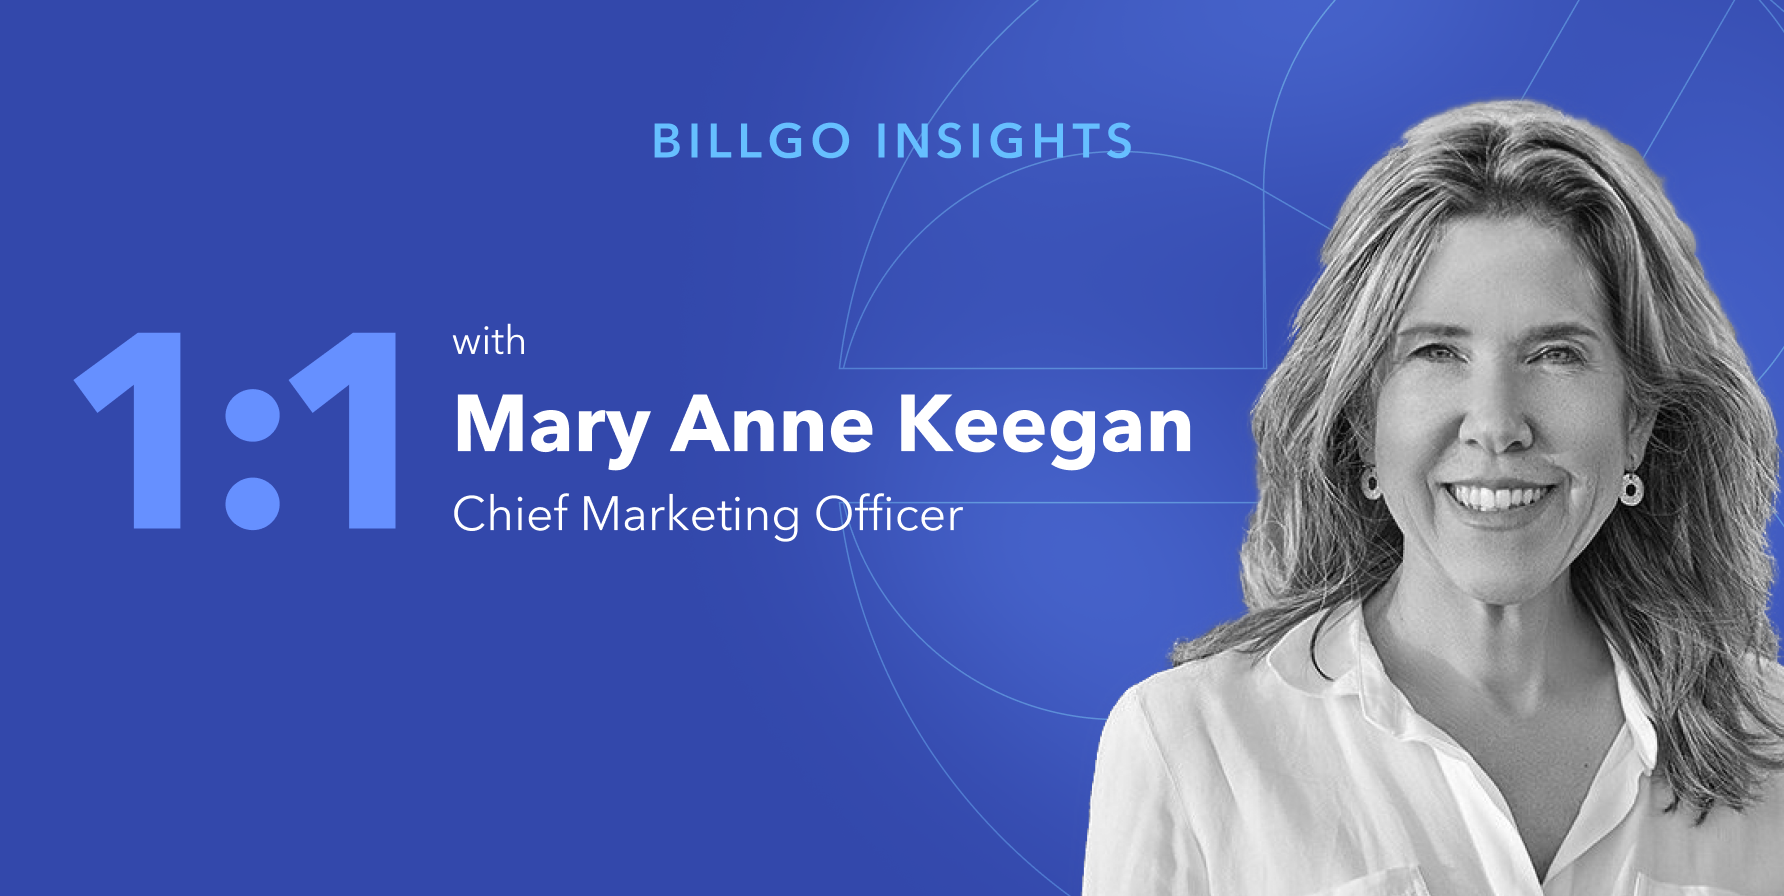 An interview with BillGO's Mary Anne Keegan